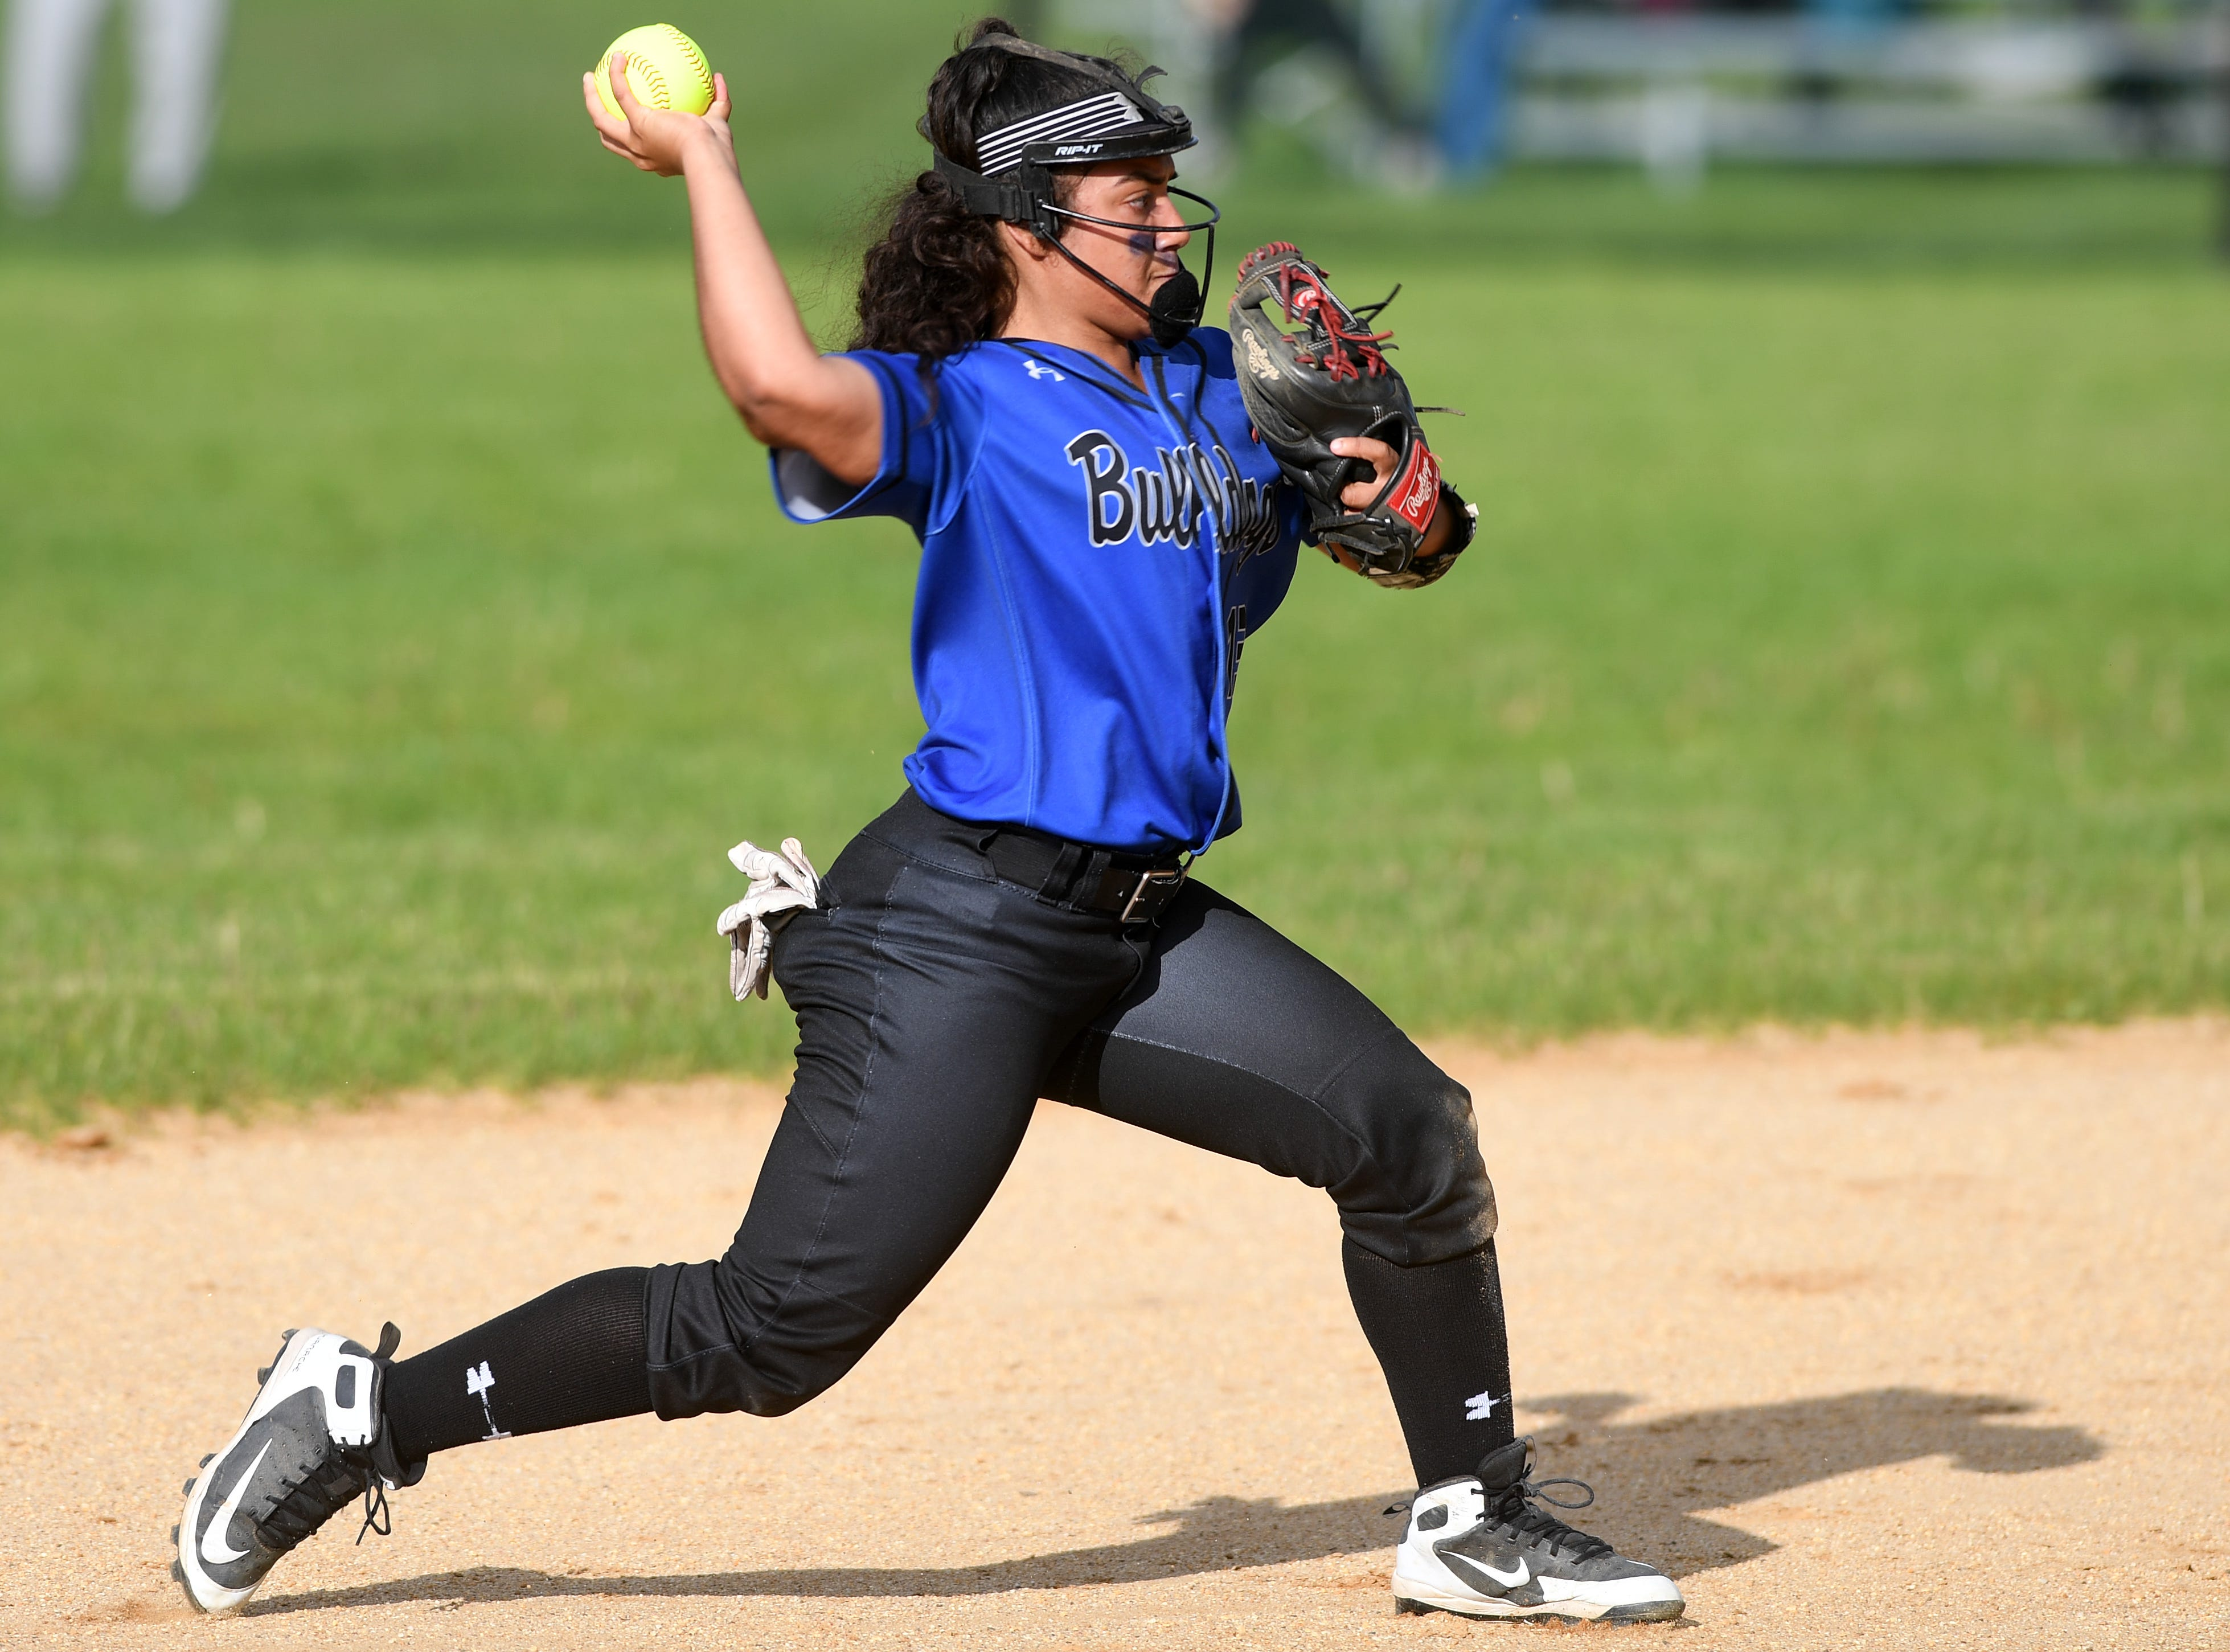 Passaic County Technical Institute vs. West Milford in the Passaic County Tournament softball final at Wayne Hills High School on Wednesday, May 15, 2019. PCTI #13 Daniela Vidal throws to first to get the out.